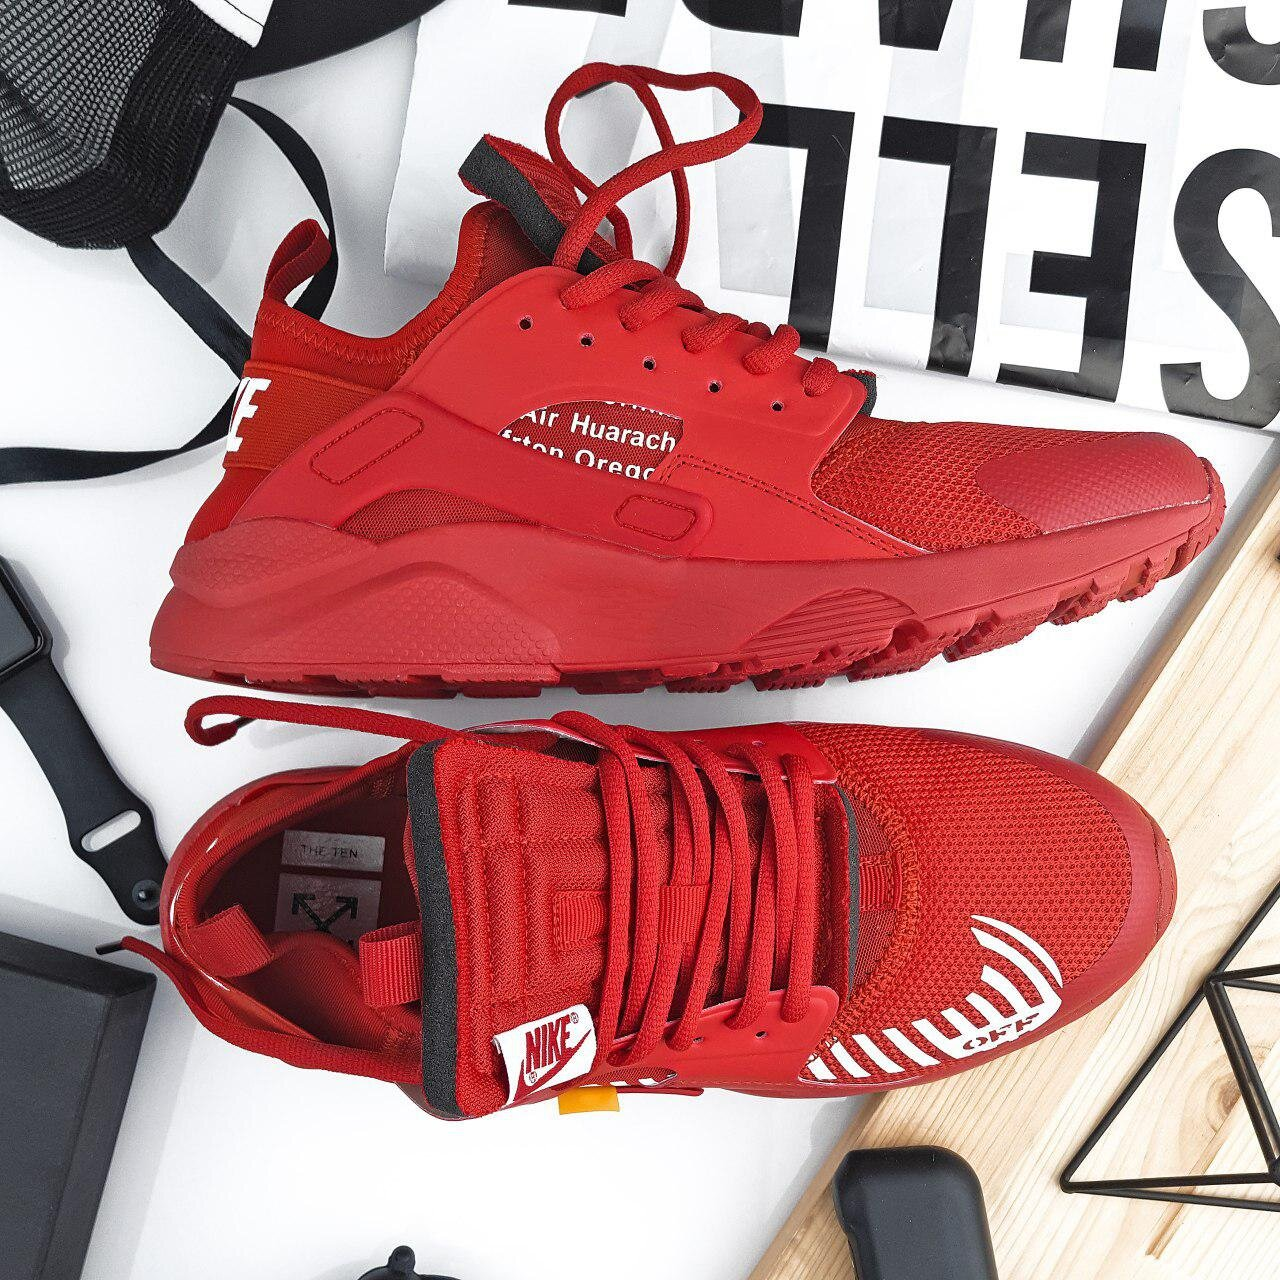 Кроссовки NK Huarache Red Off White ( Реплика ААА+ ), 41